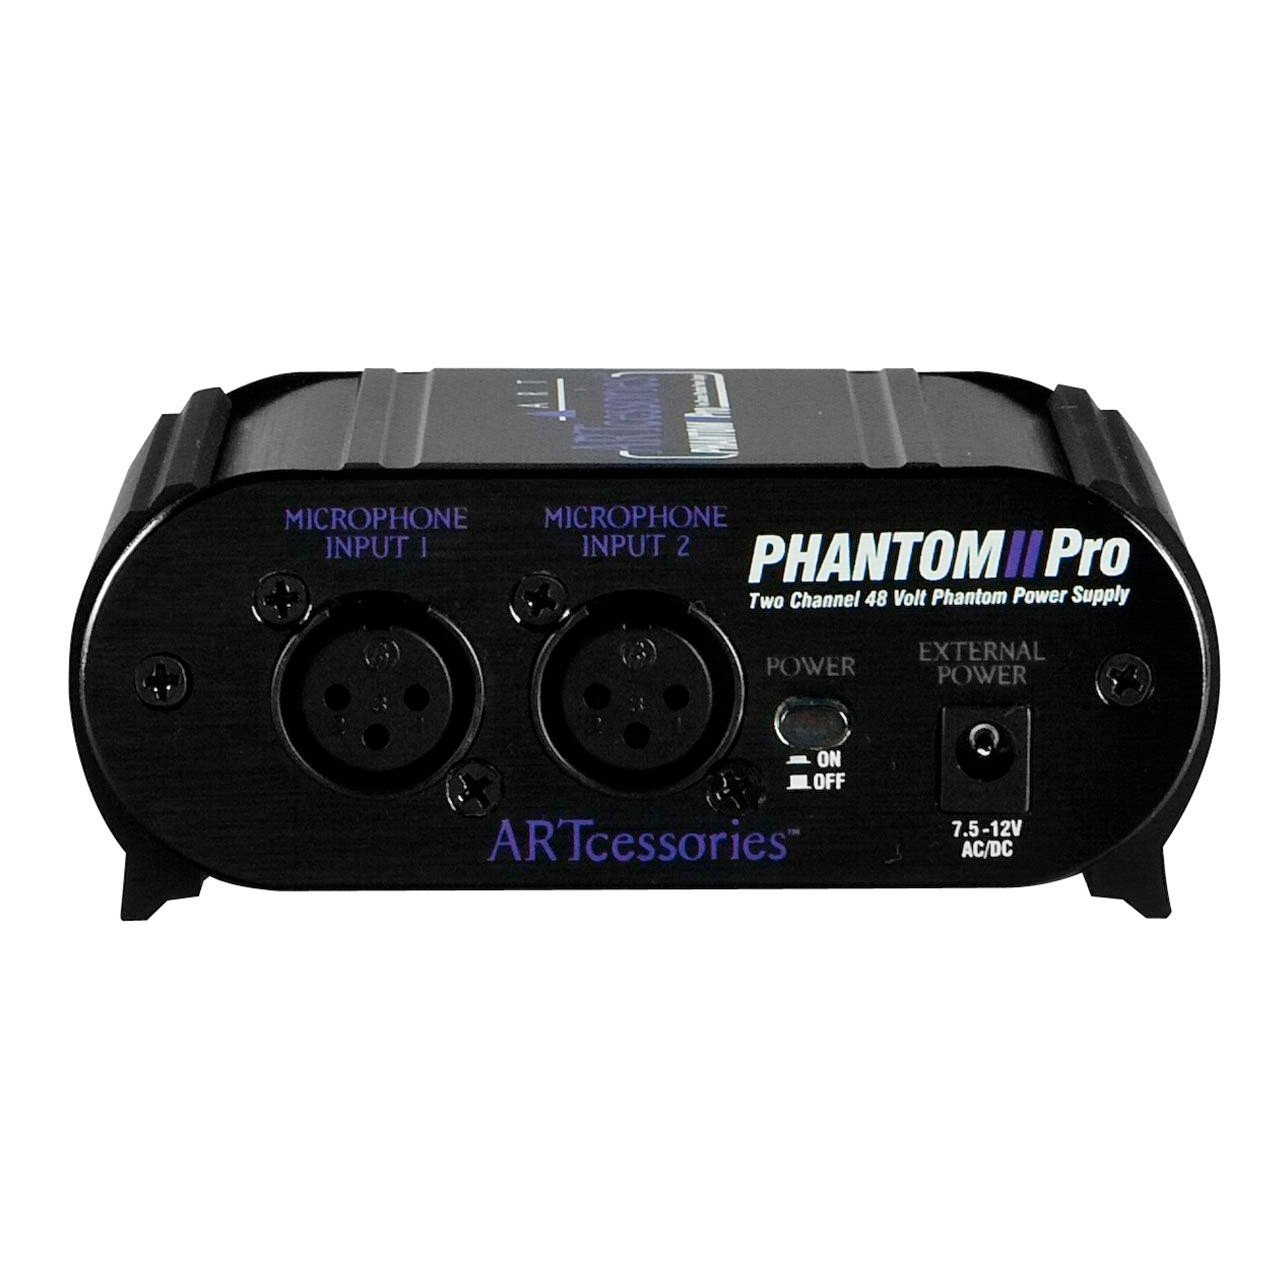 Microphone Accessories - ART Phantom II Pro Dual Ch. Phantom Power Supply